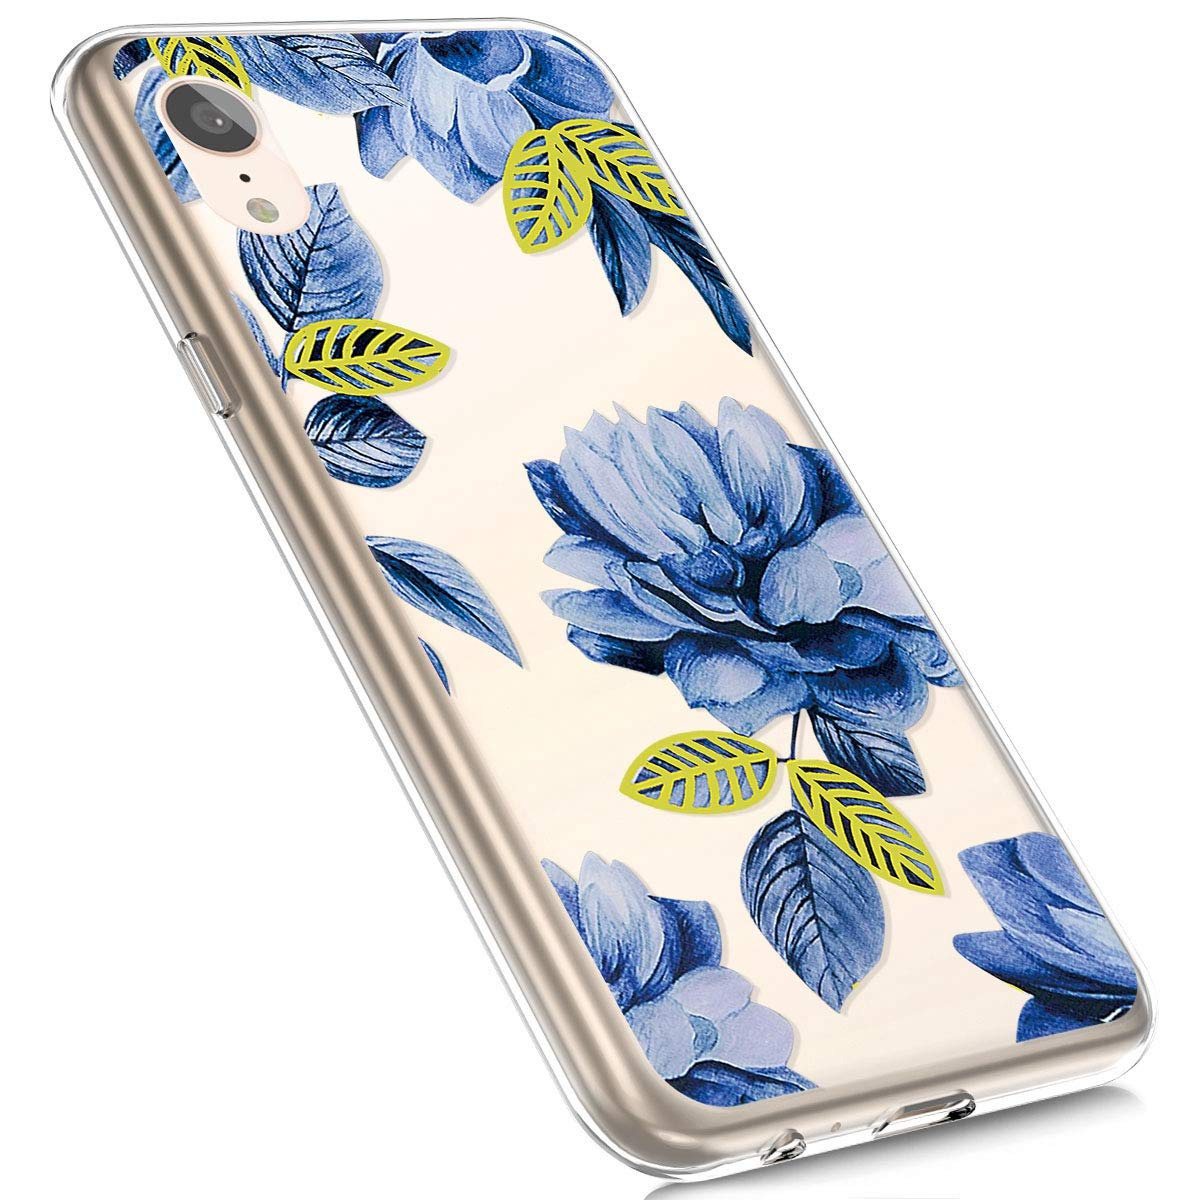 Jinghuash Soft TPU Phone Cases Compatible for iphone XR,Painted Design Slim Anti-Scratch Shockproof Silicone Gel Protection Case Cover for iphone XR,Green Leaf